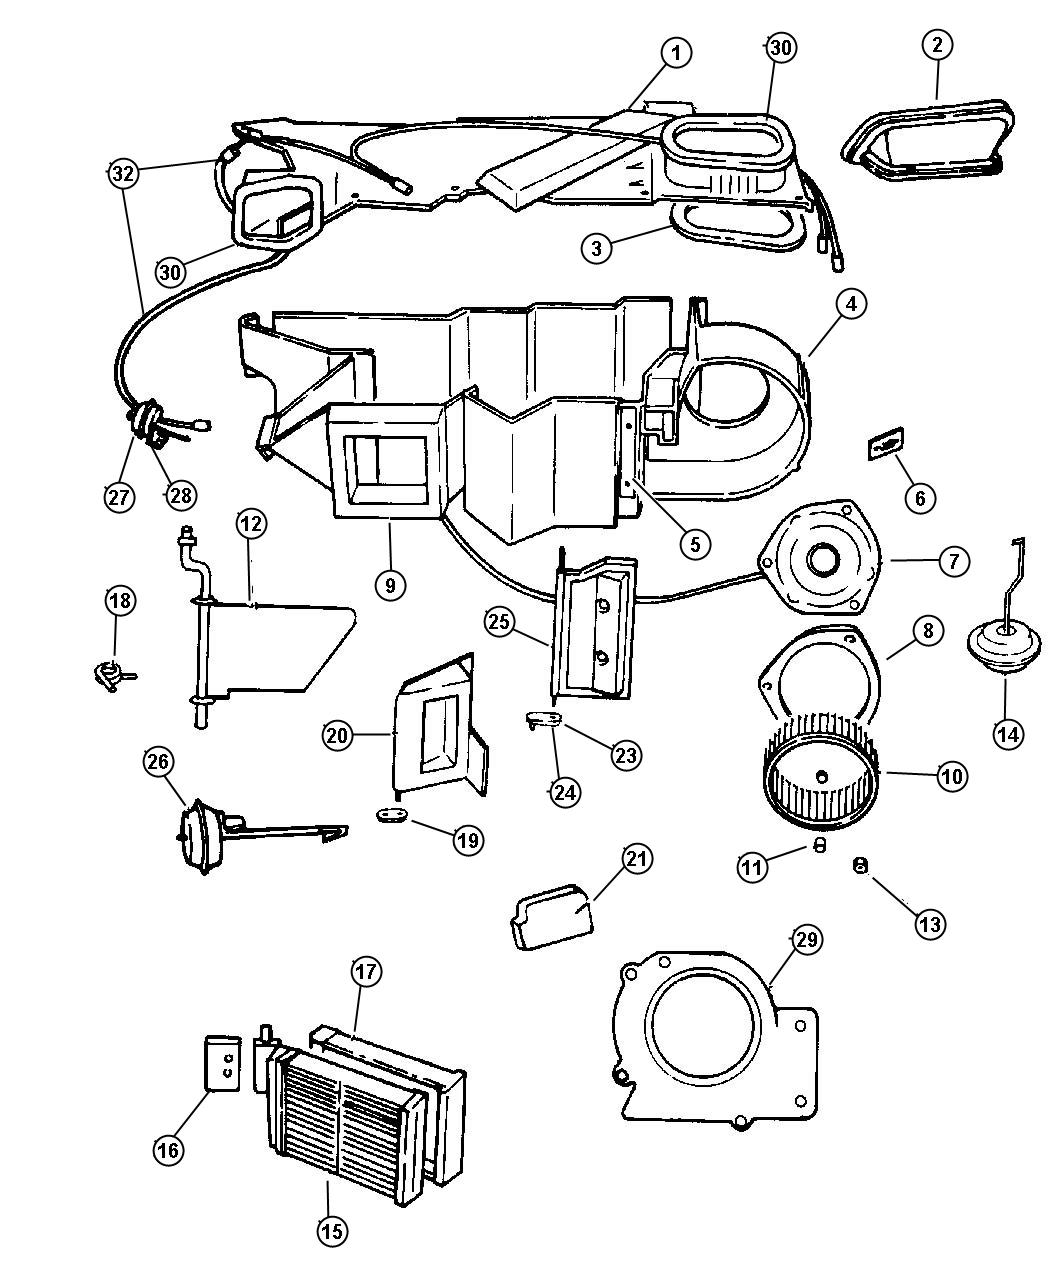 [DIAGRAM] 2000 Jeep Cherokee Heater Diagram FULL Version